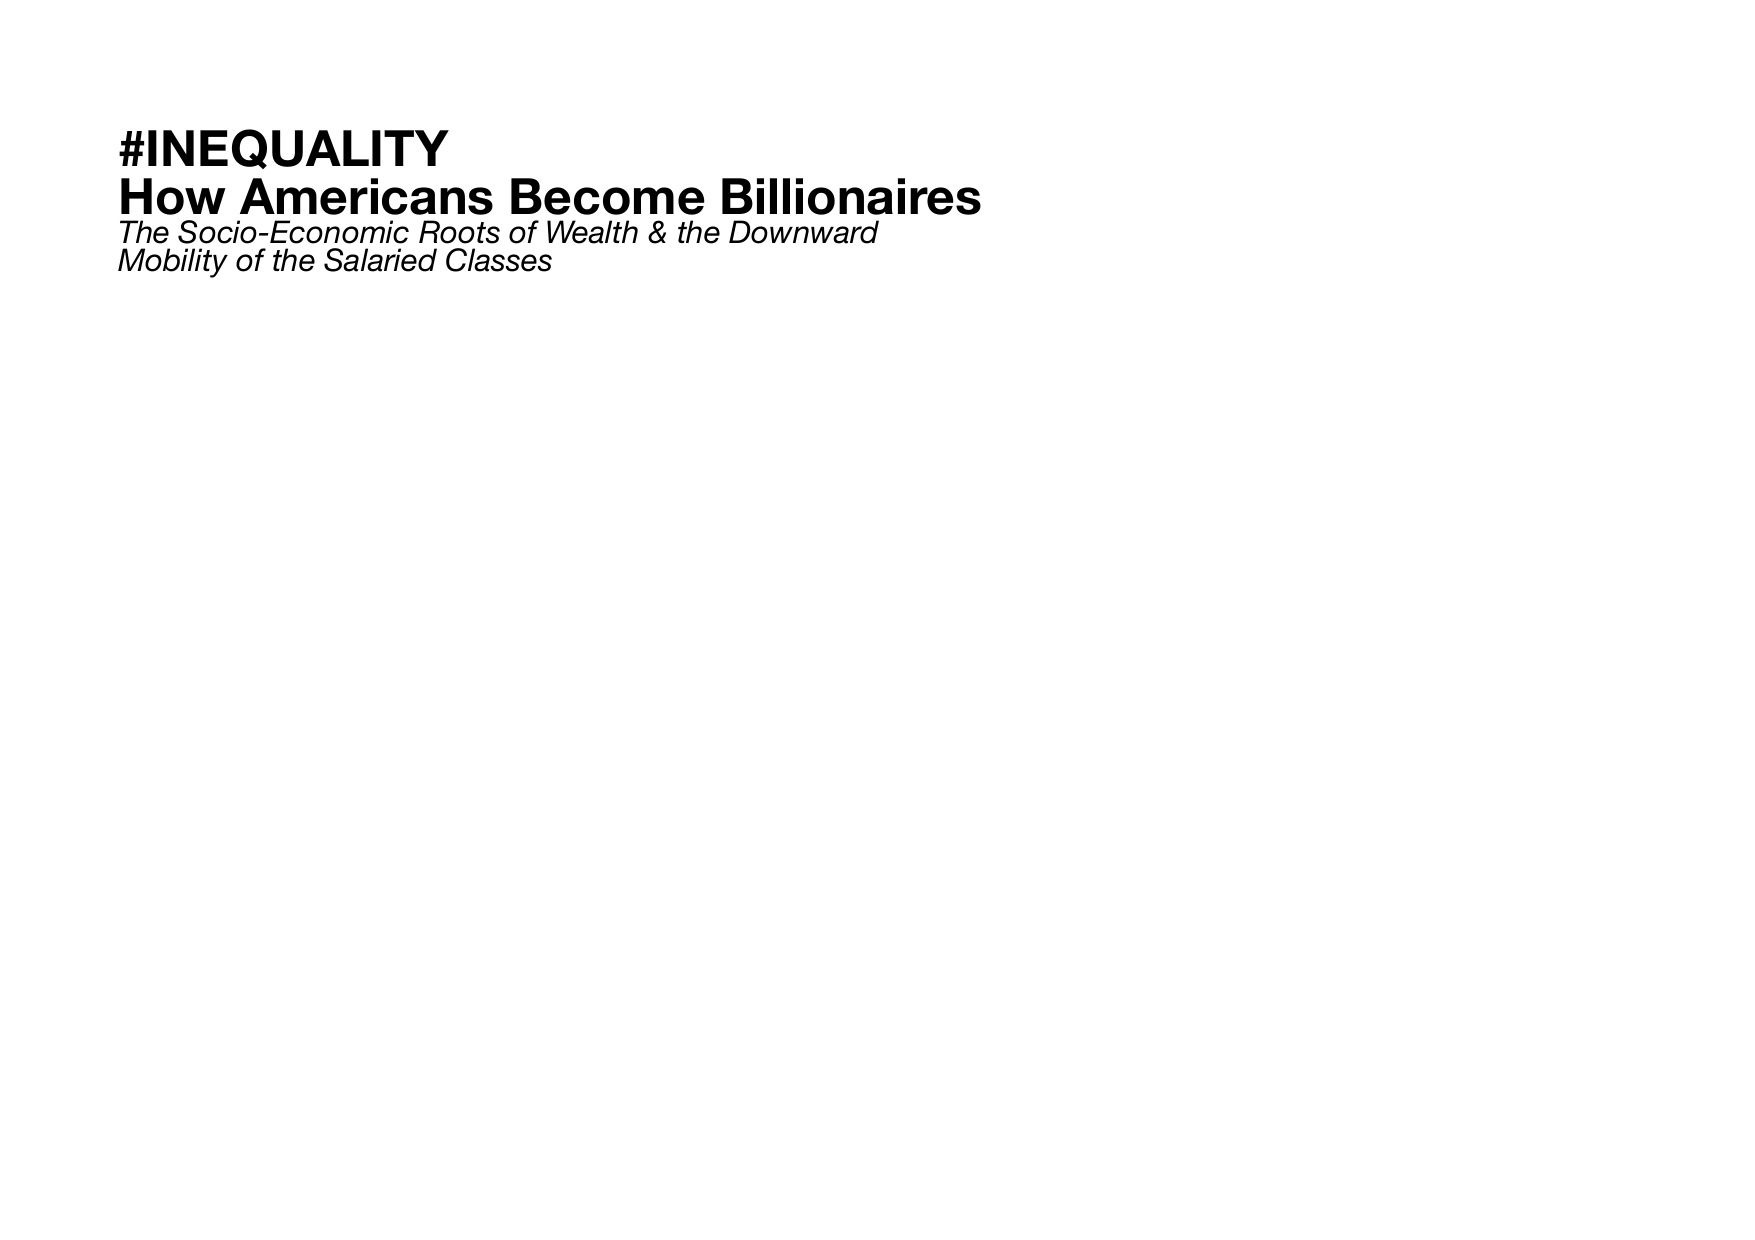 https://i.ibb.co/b3XXBzs/James-Petras-Inequality-How-Americans-Became-Billionaires-GROUND-Ed-Ismael-Ogando-August-2019-01